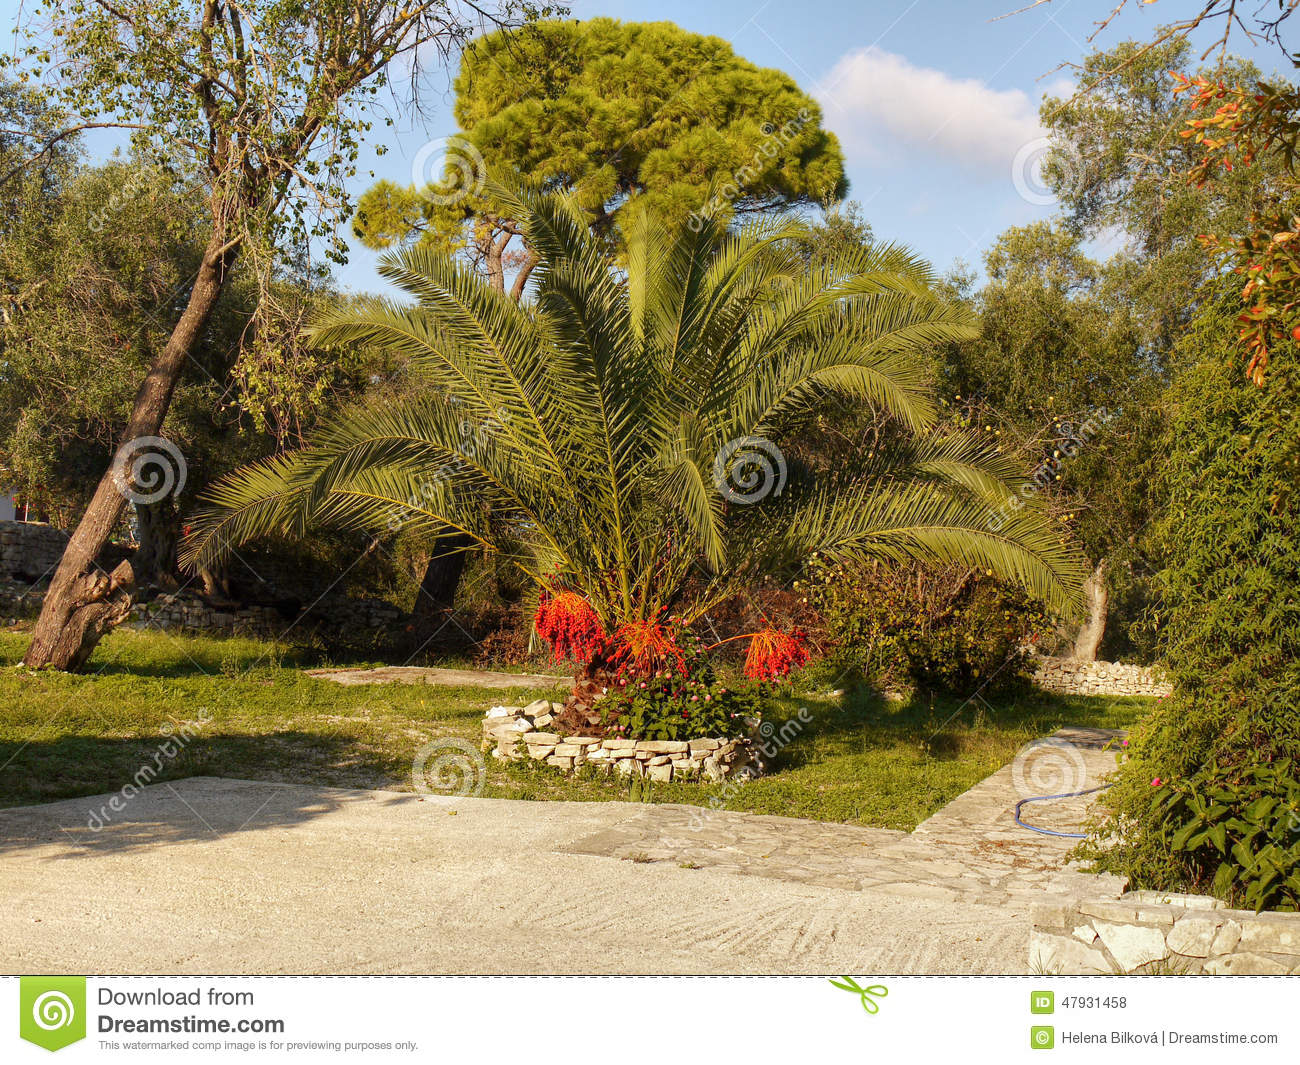 Tropical Palm Garden stock photo. Image of cottage, flowers - 47931458